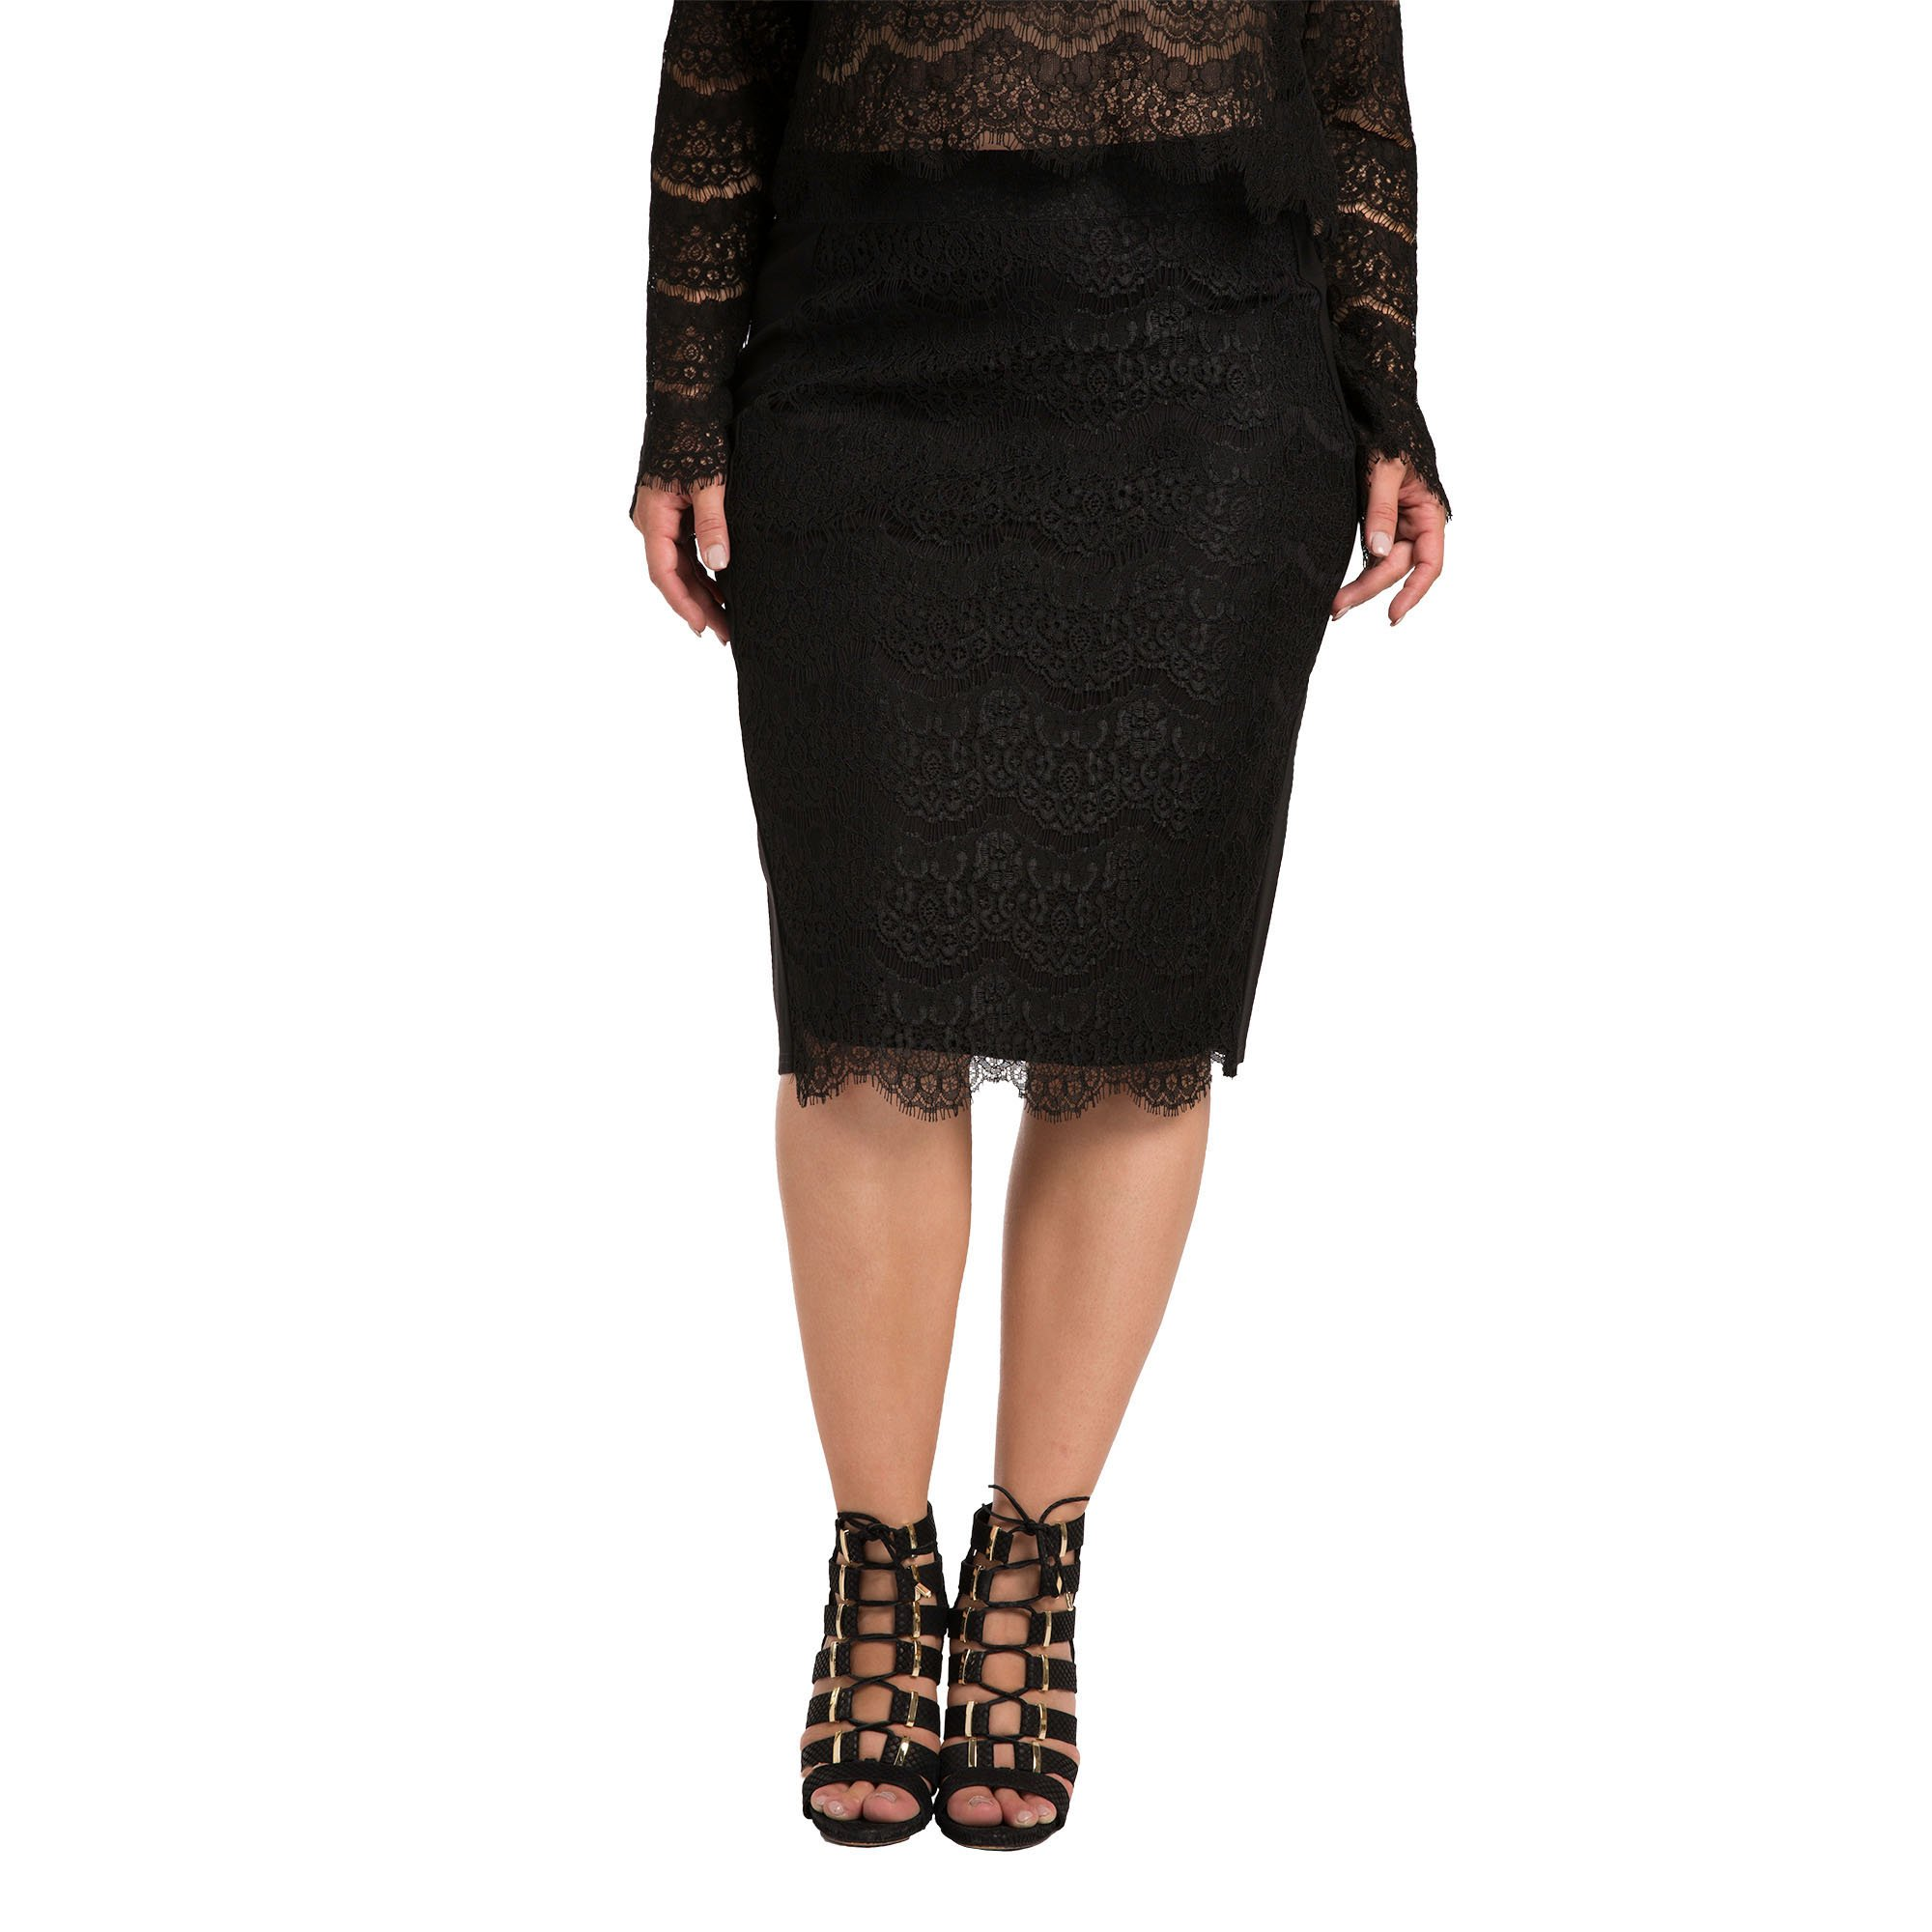 Standards & Practices Contemporary Women's Plus Size Black Ponte Lace Pencil Skirt Size 2X